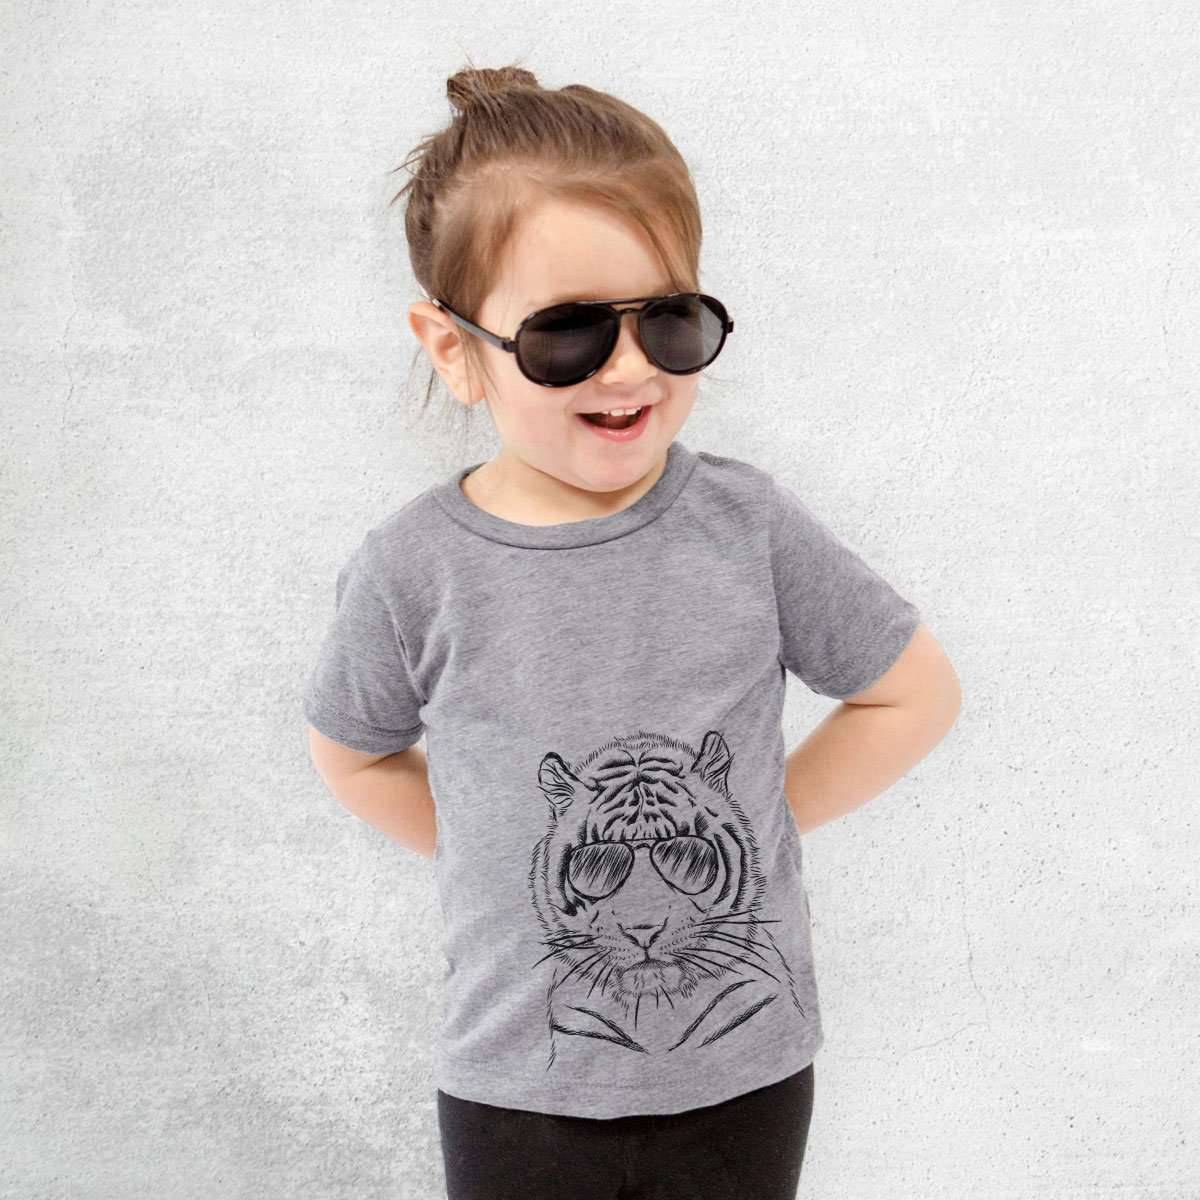 Taz the Tiger - Kids/Youth/Toddler Shirt